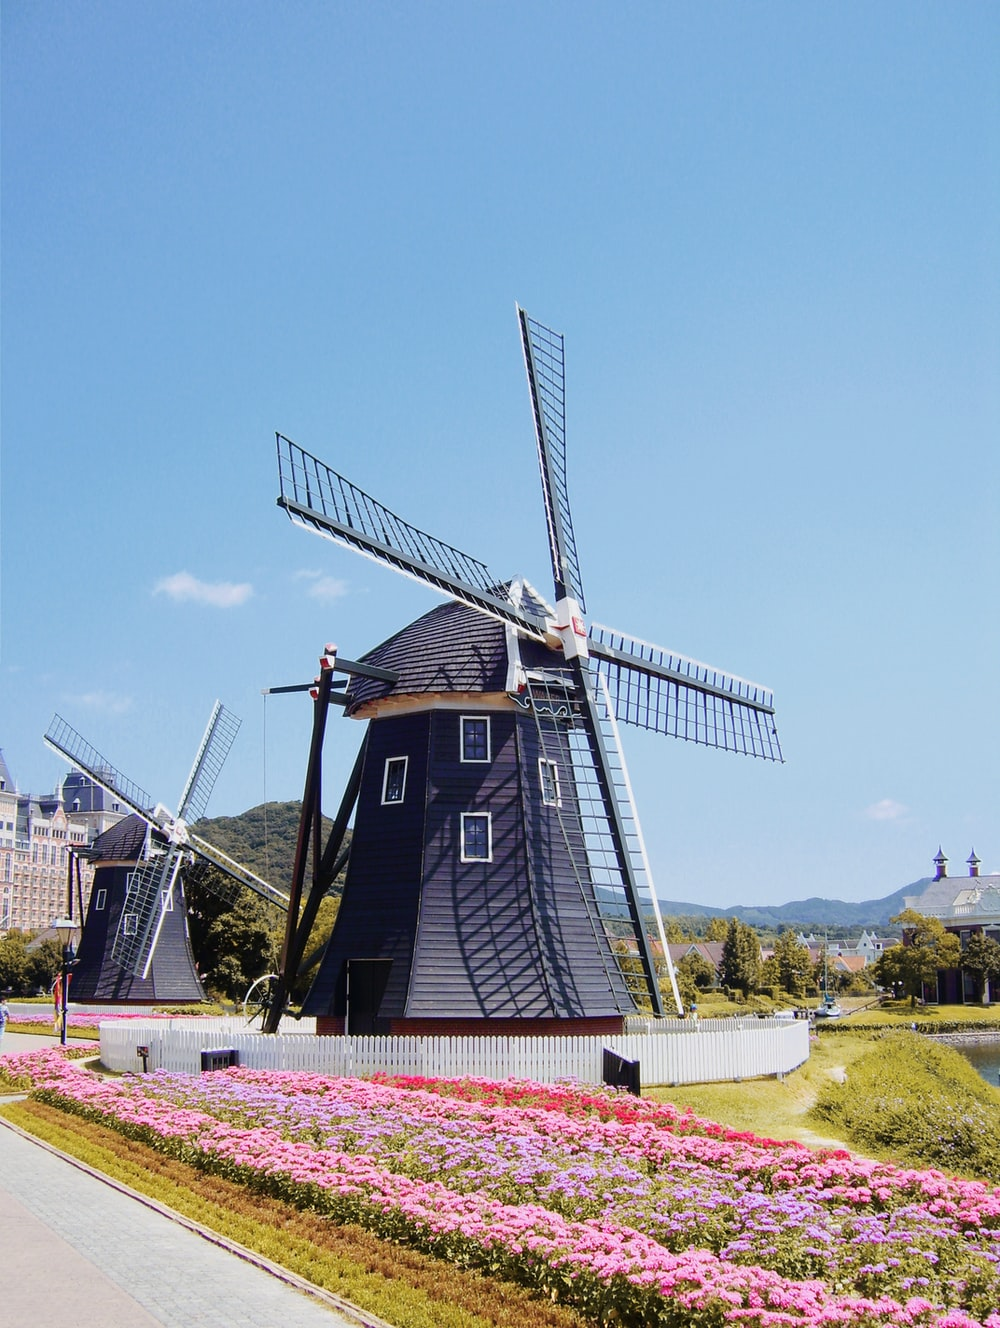 black and red windmill under blue sky during daytime